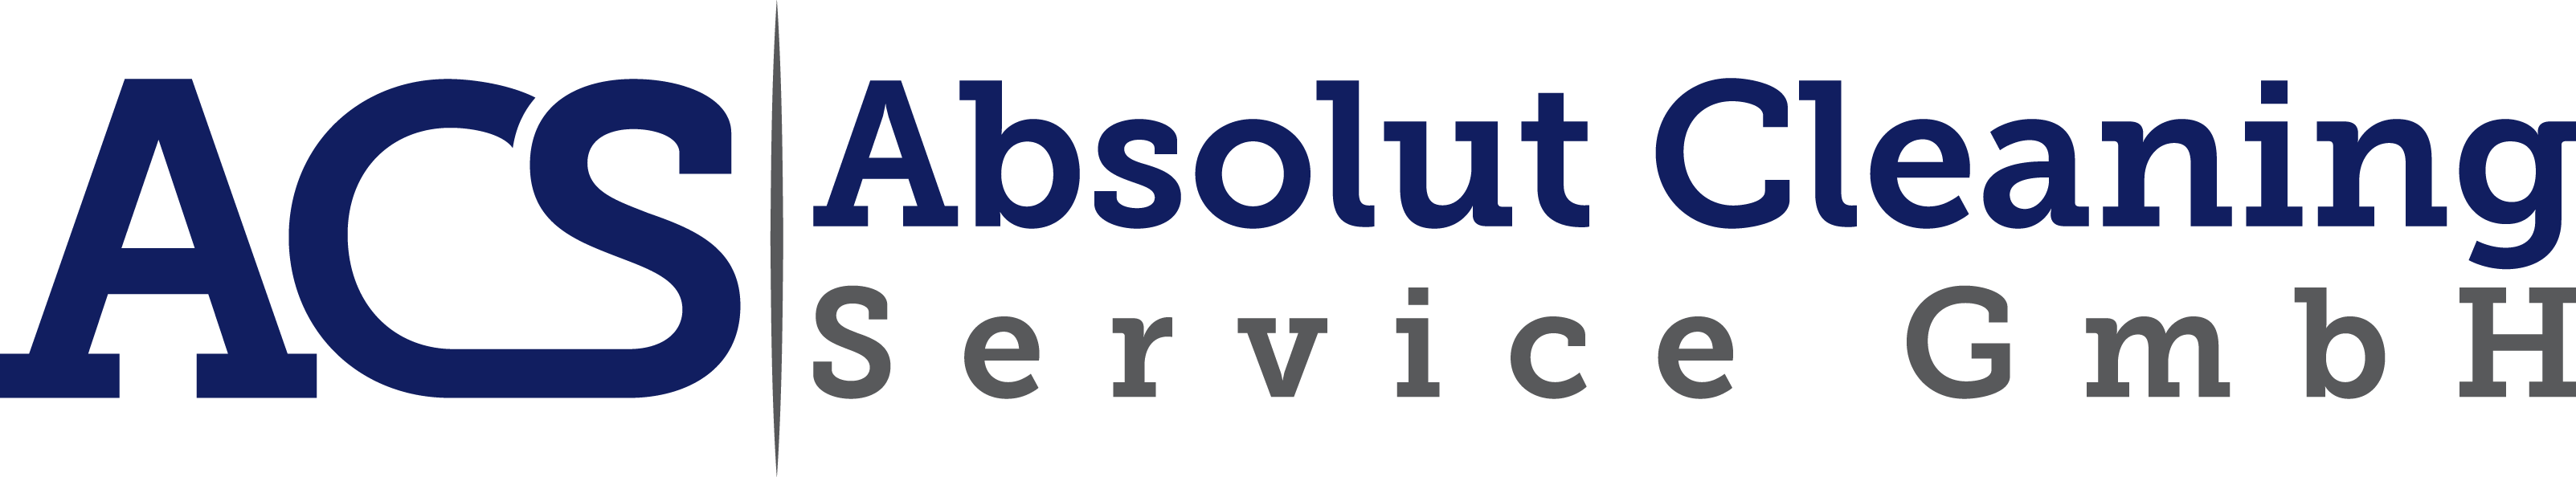 Absolut Cleaning Service GmbH